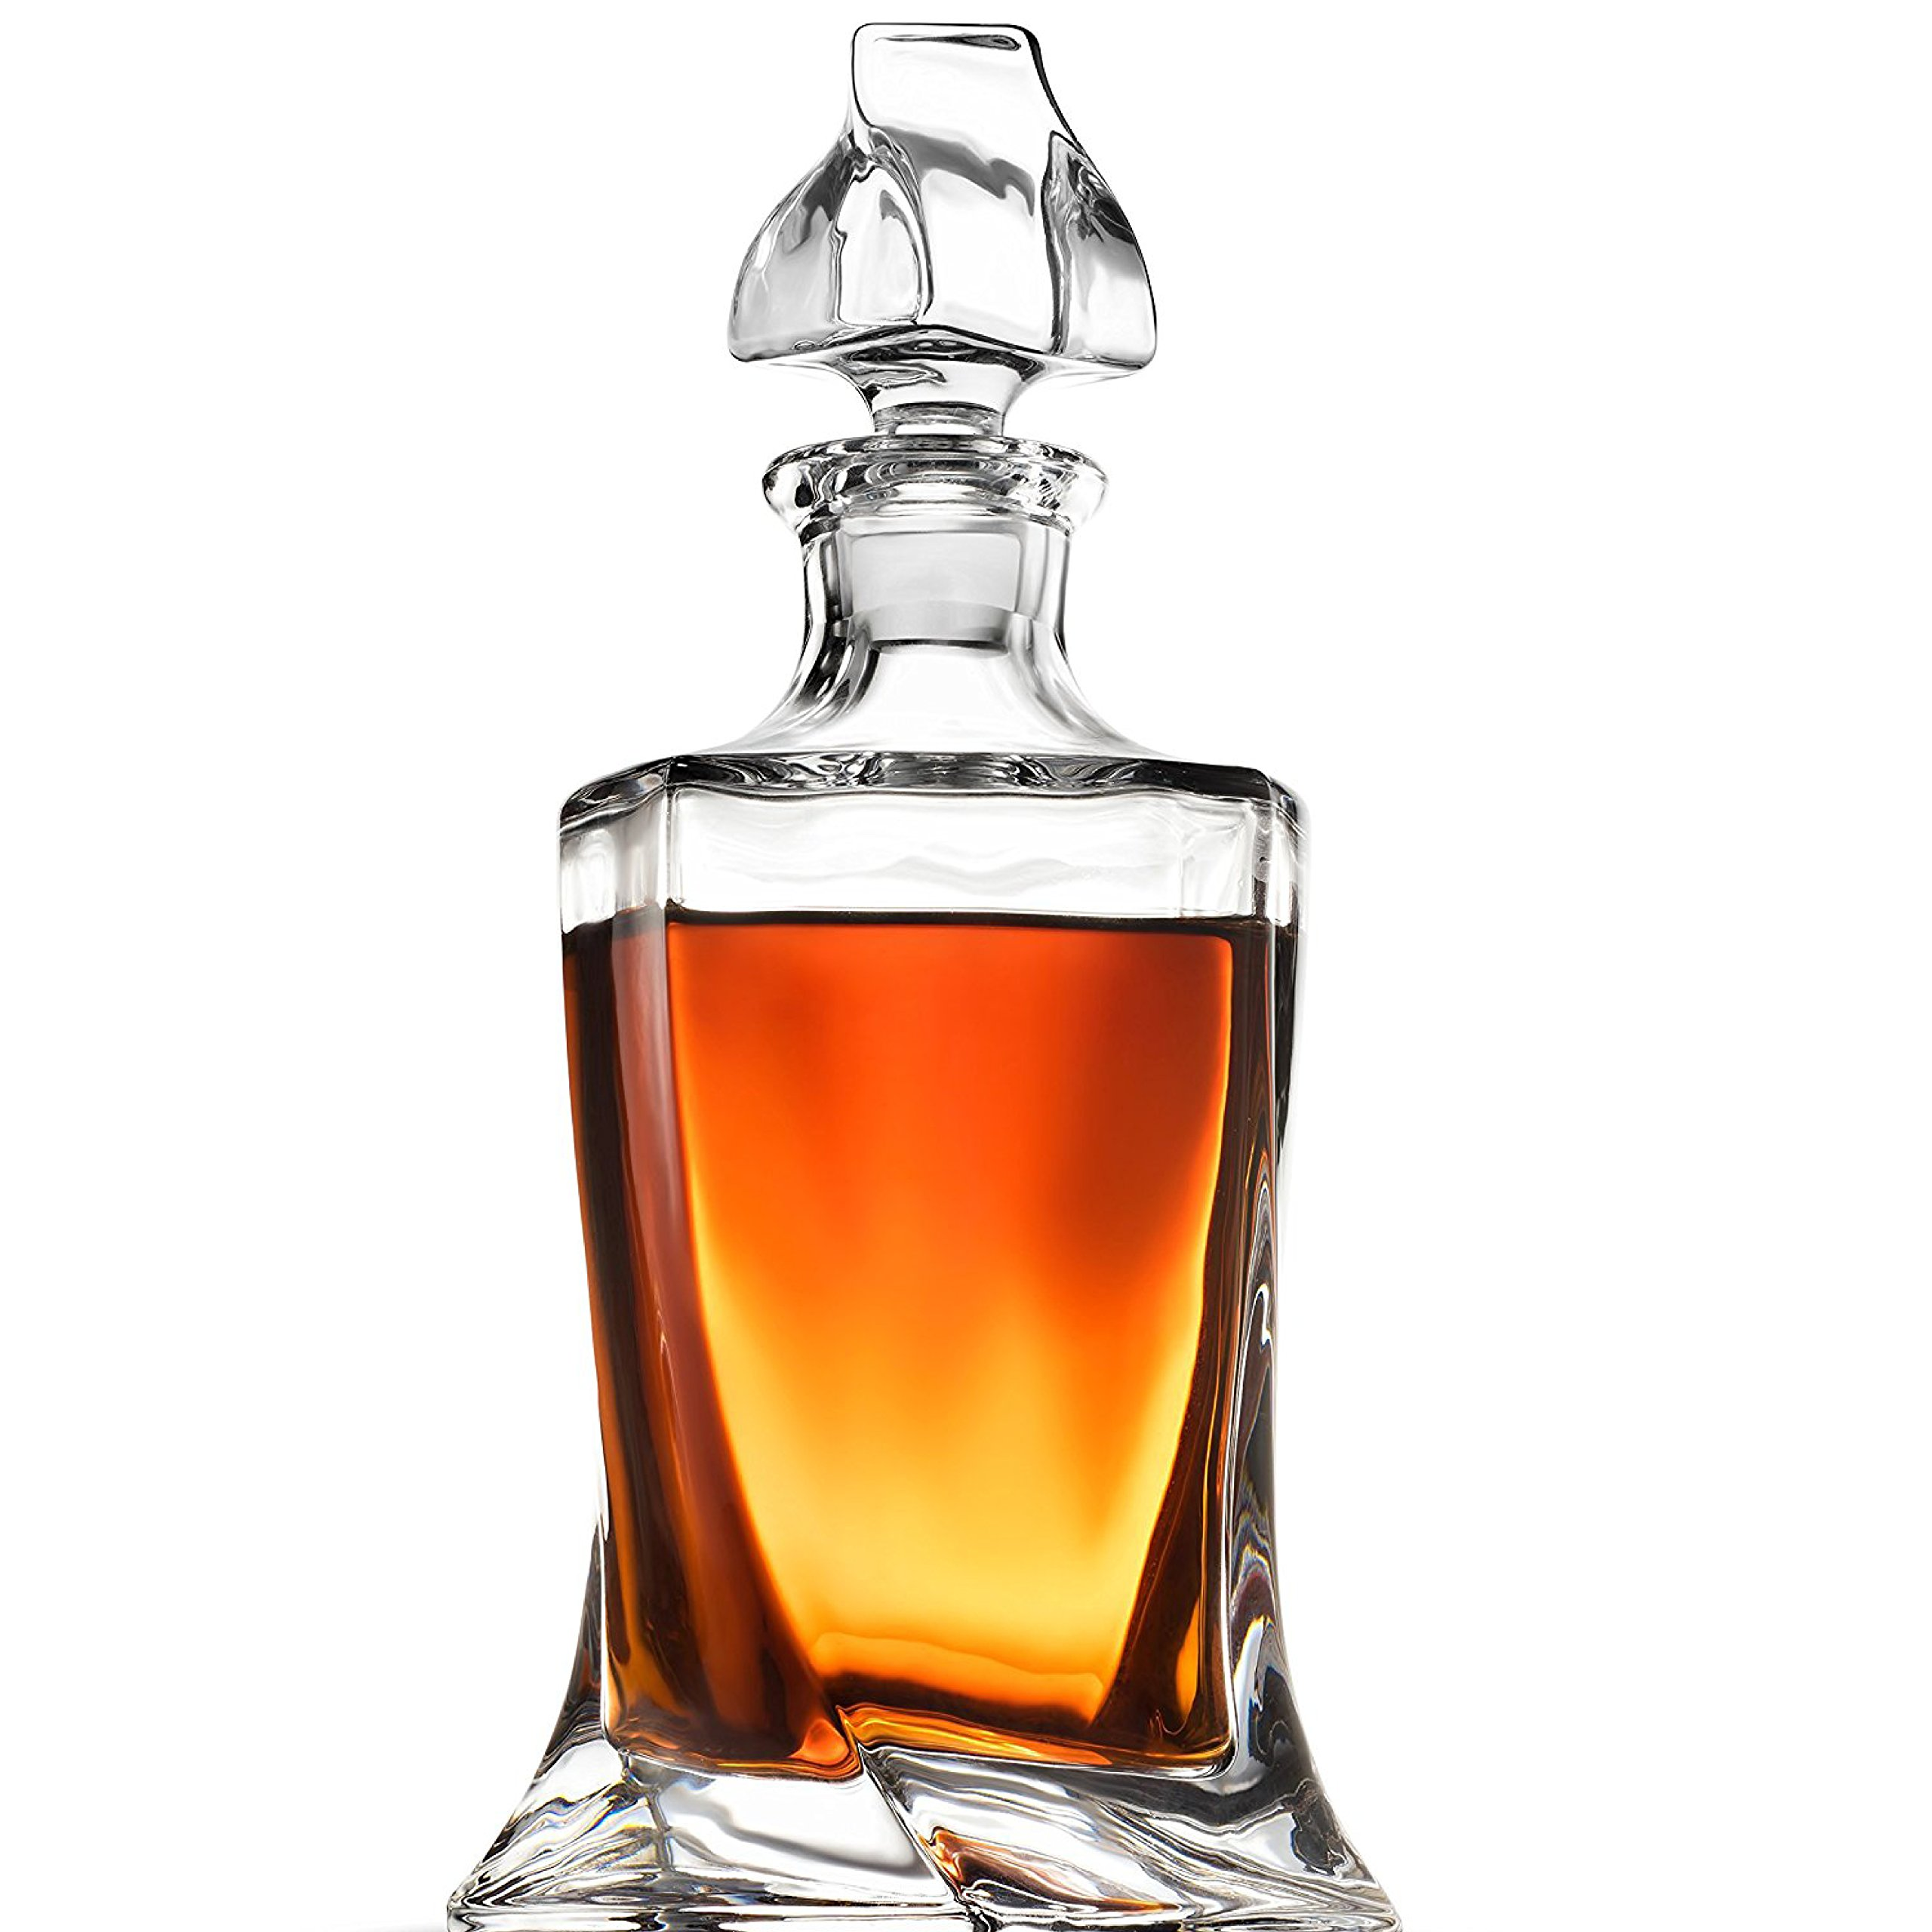 FineDine European Style Glass Whiskey Decanter & Liquor Decanter with Glass Stopper, 28 Oz.- With Magnetic Gift Box - Aristocratic Exquisite Quadro Design - Glass Decanter for Alcohol Bourbon Scotch. by FINEDINE